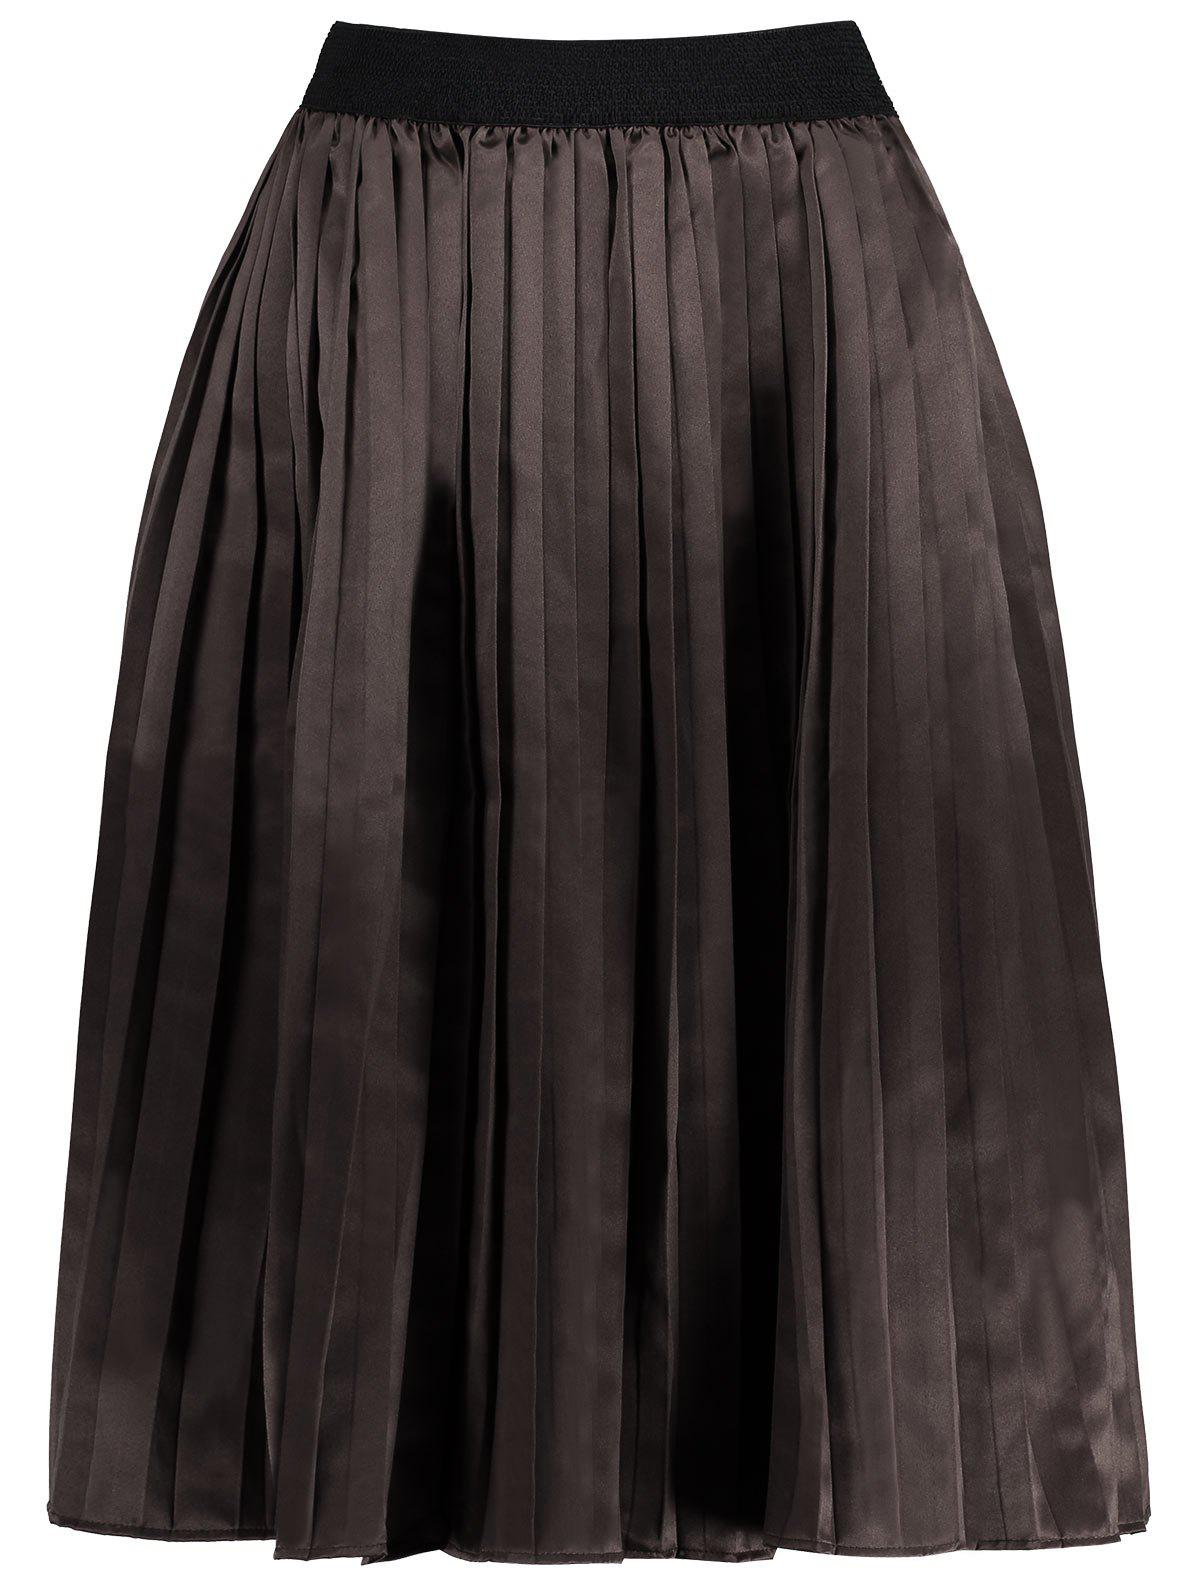 Plus Size Pleated Midi Elastic Waist Skirt - DARK CAMEL 2XL